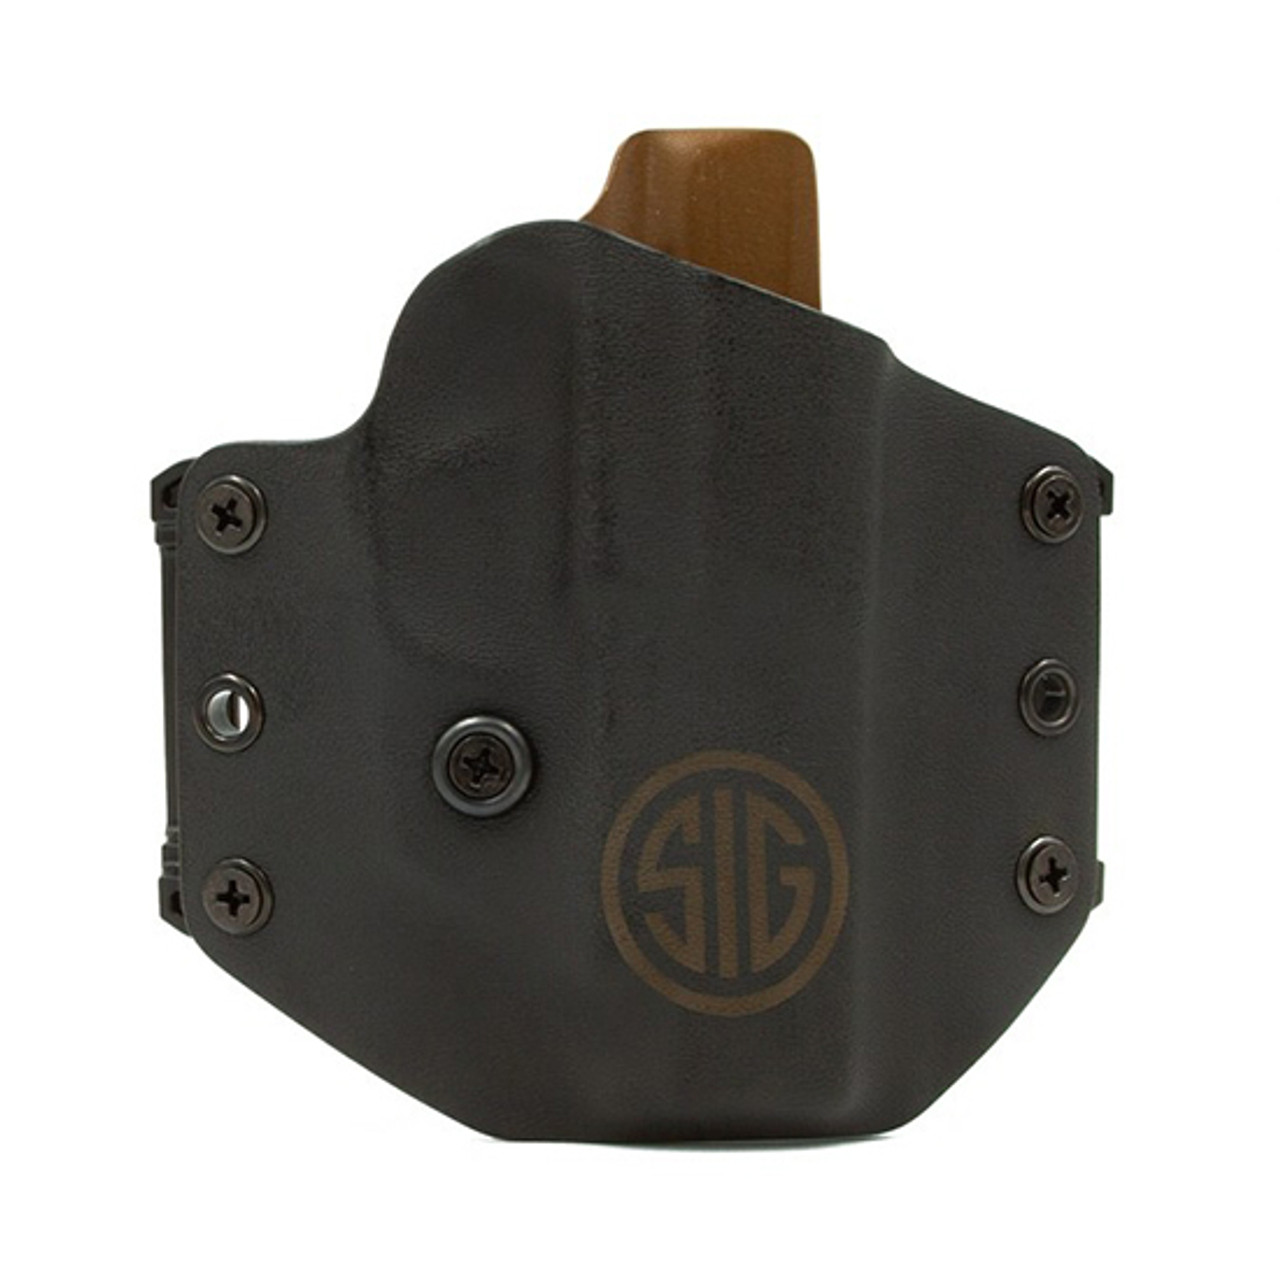 HD Concealed RH LH OWB IWB Leather Gun Holster For Ruger LC9 w// Lasermax